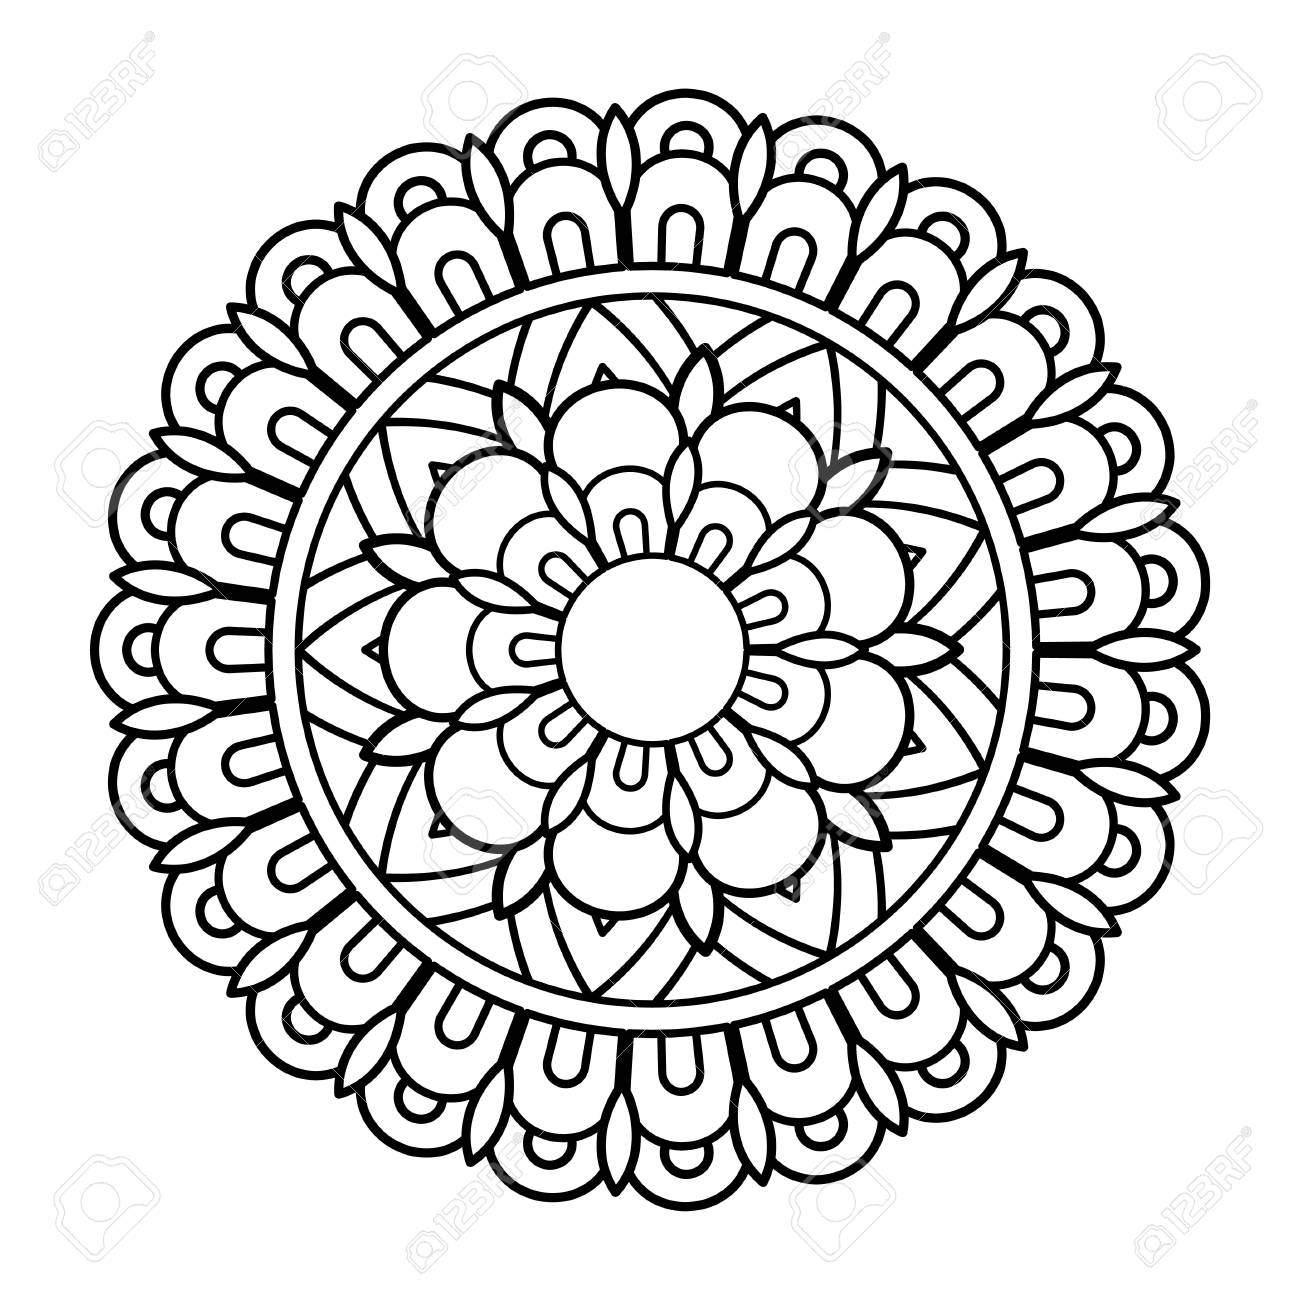 Download Free png Flower Mandala Vector Illustration Royalty.